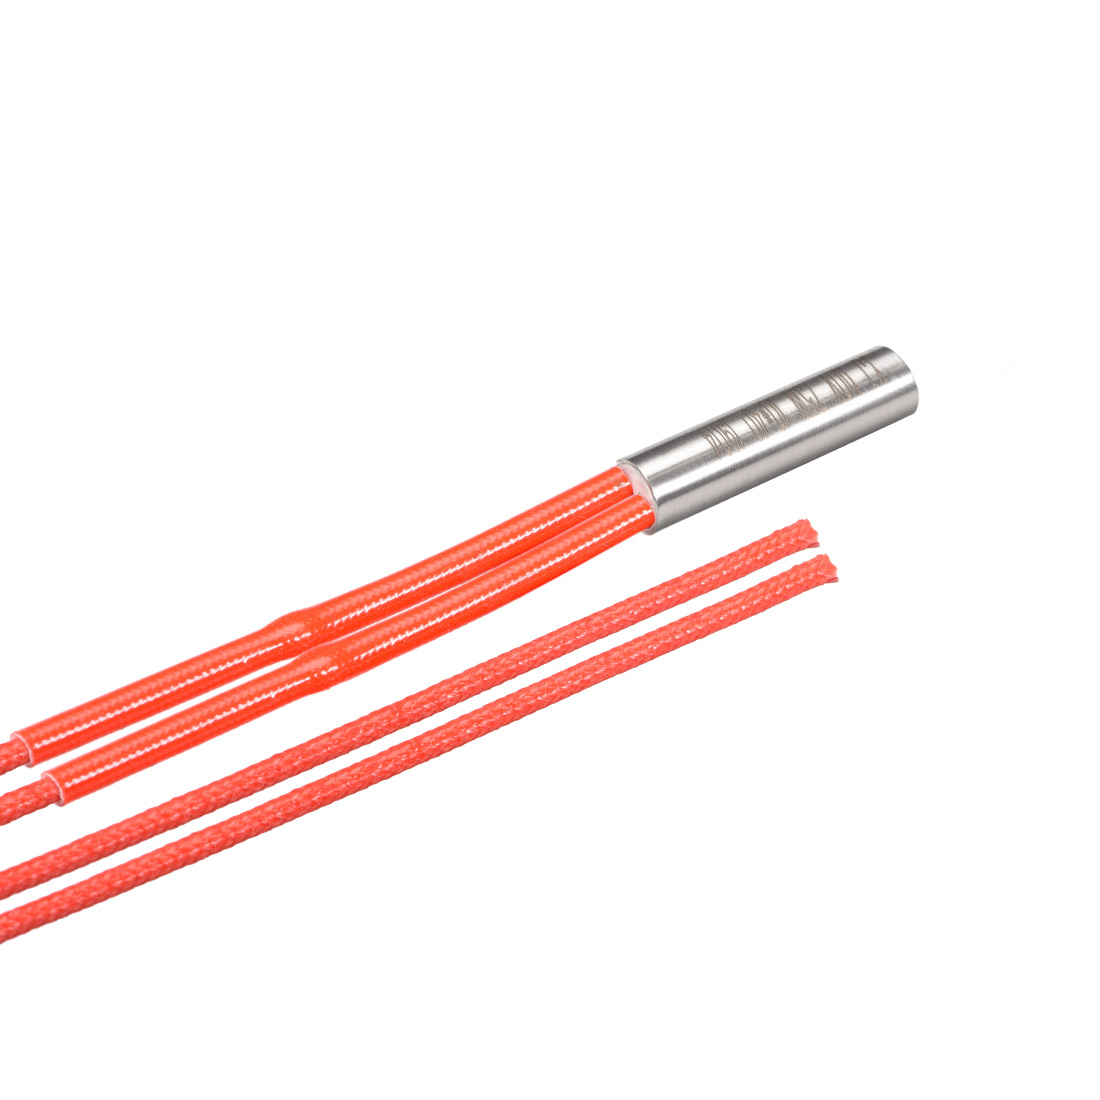 Cartridge Heater AC 110V 75W Stainless Steel Heating Element Replacement